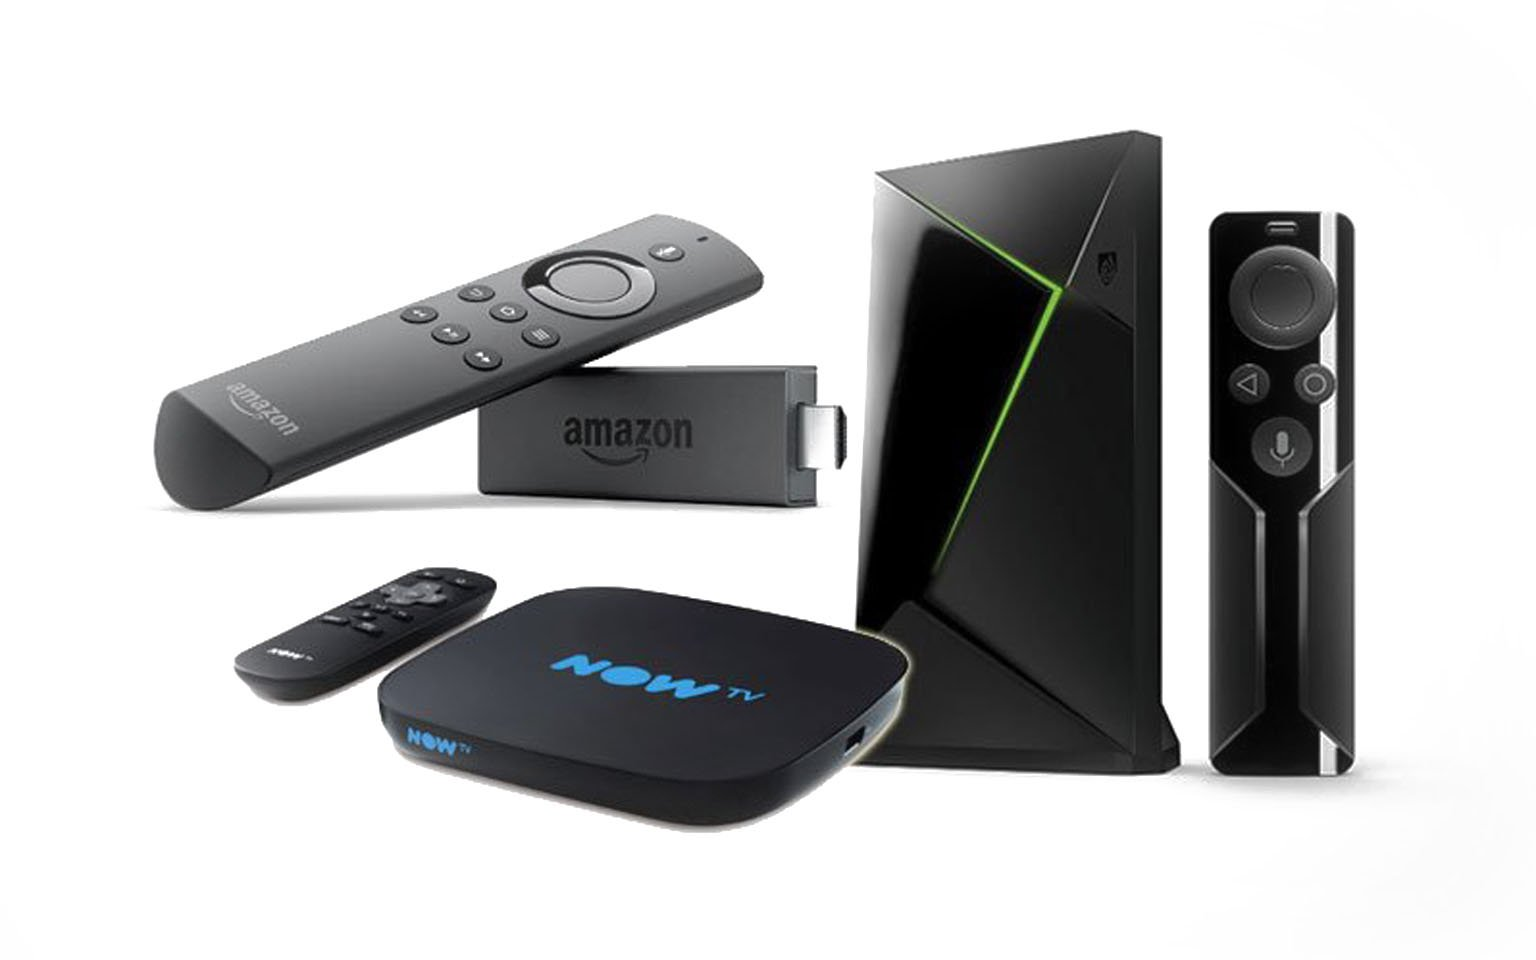 Best Media Streamers Players For Binge Watching TV Shows Series Netflix Amazon Prime Video YouTube Sky Sports